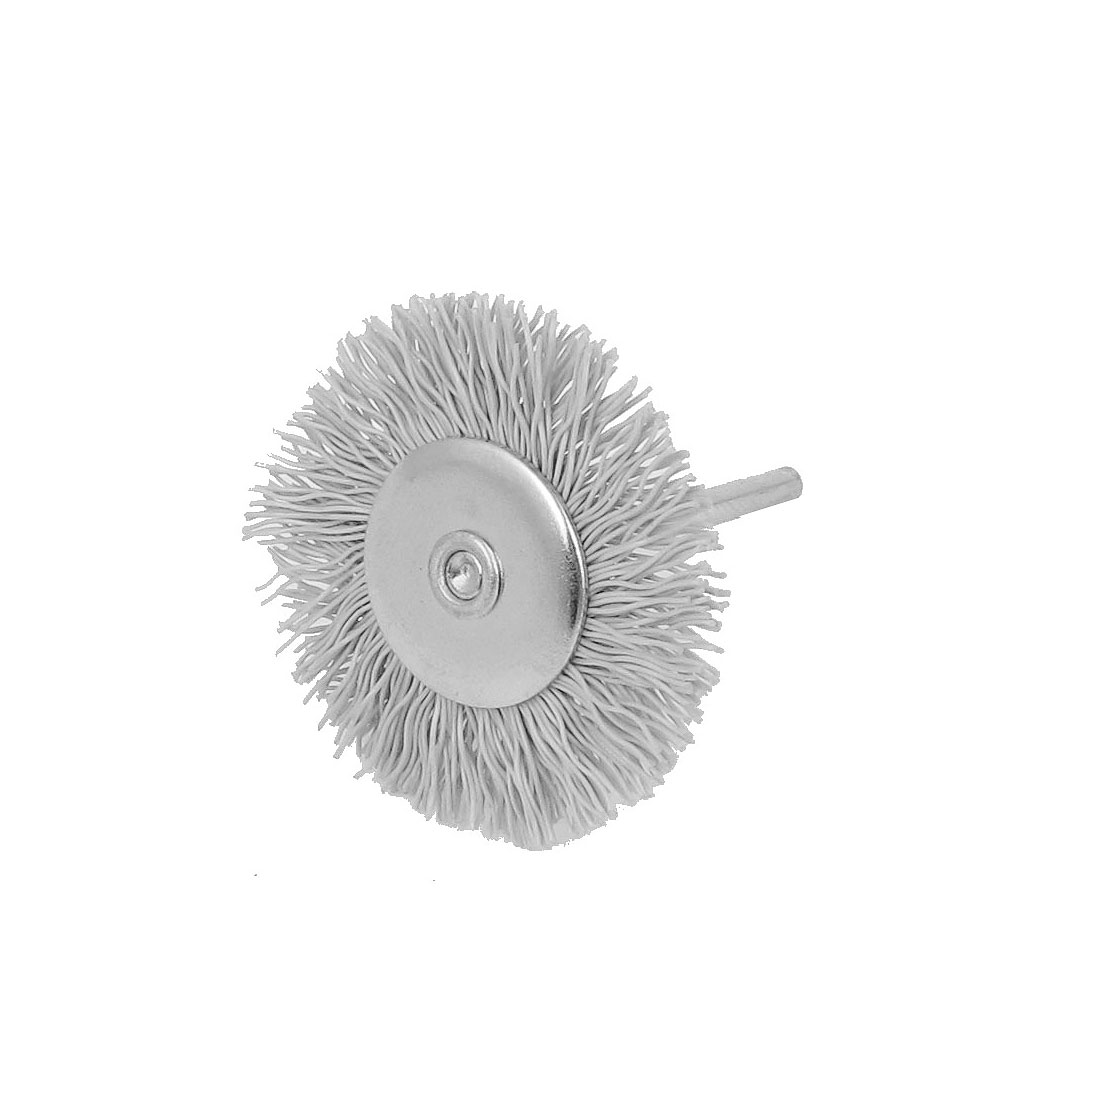 Rotary Tool 38mm Dia Bristle Head Jewelry Buffing Polishing Wheels Brushes